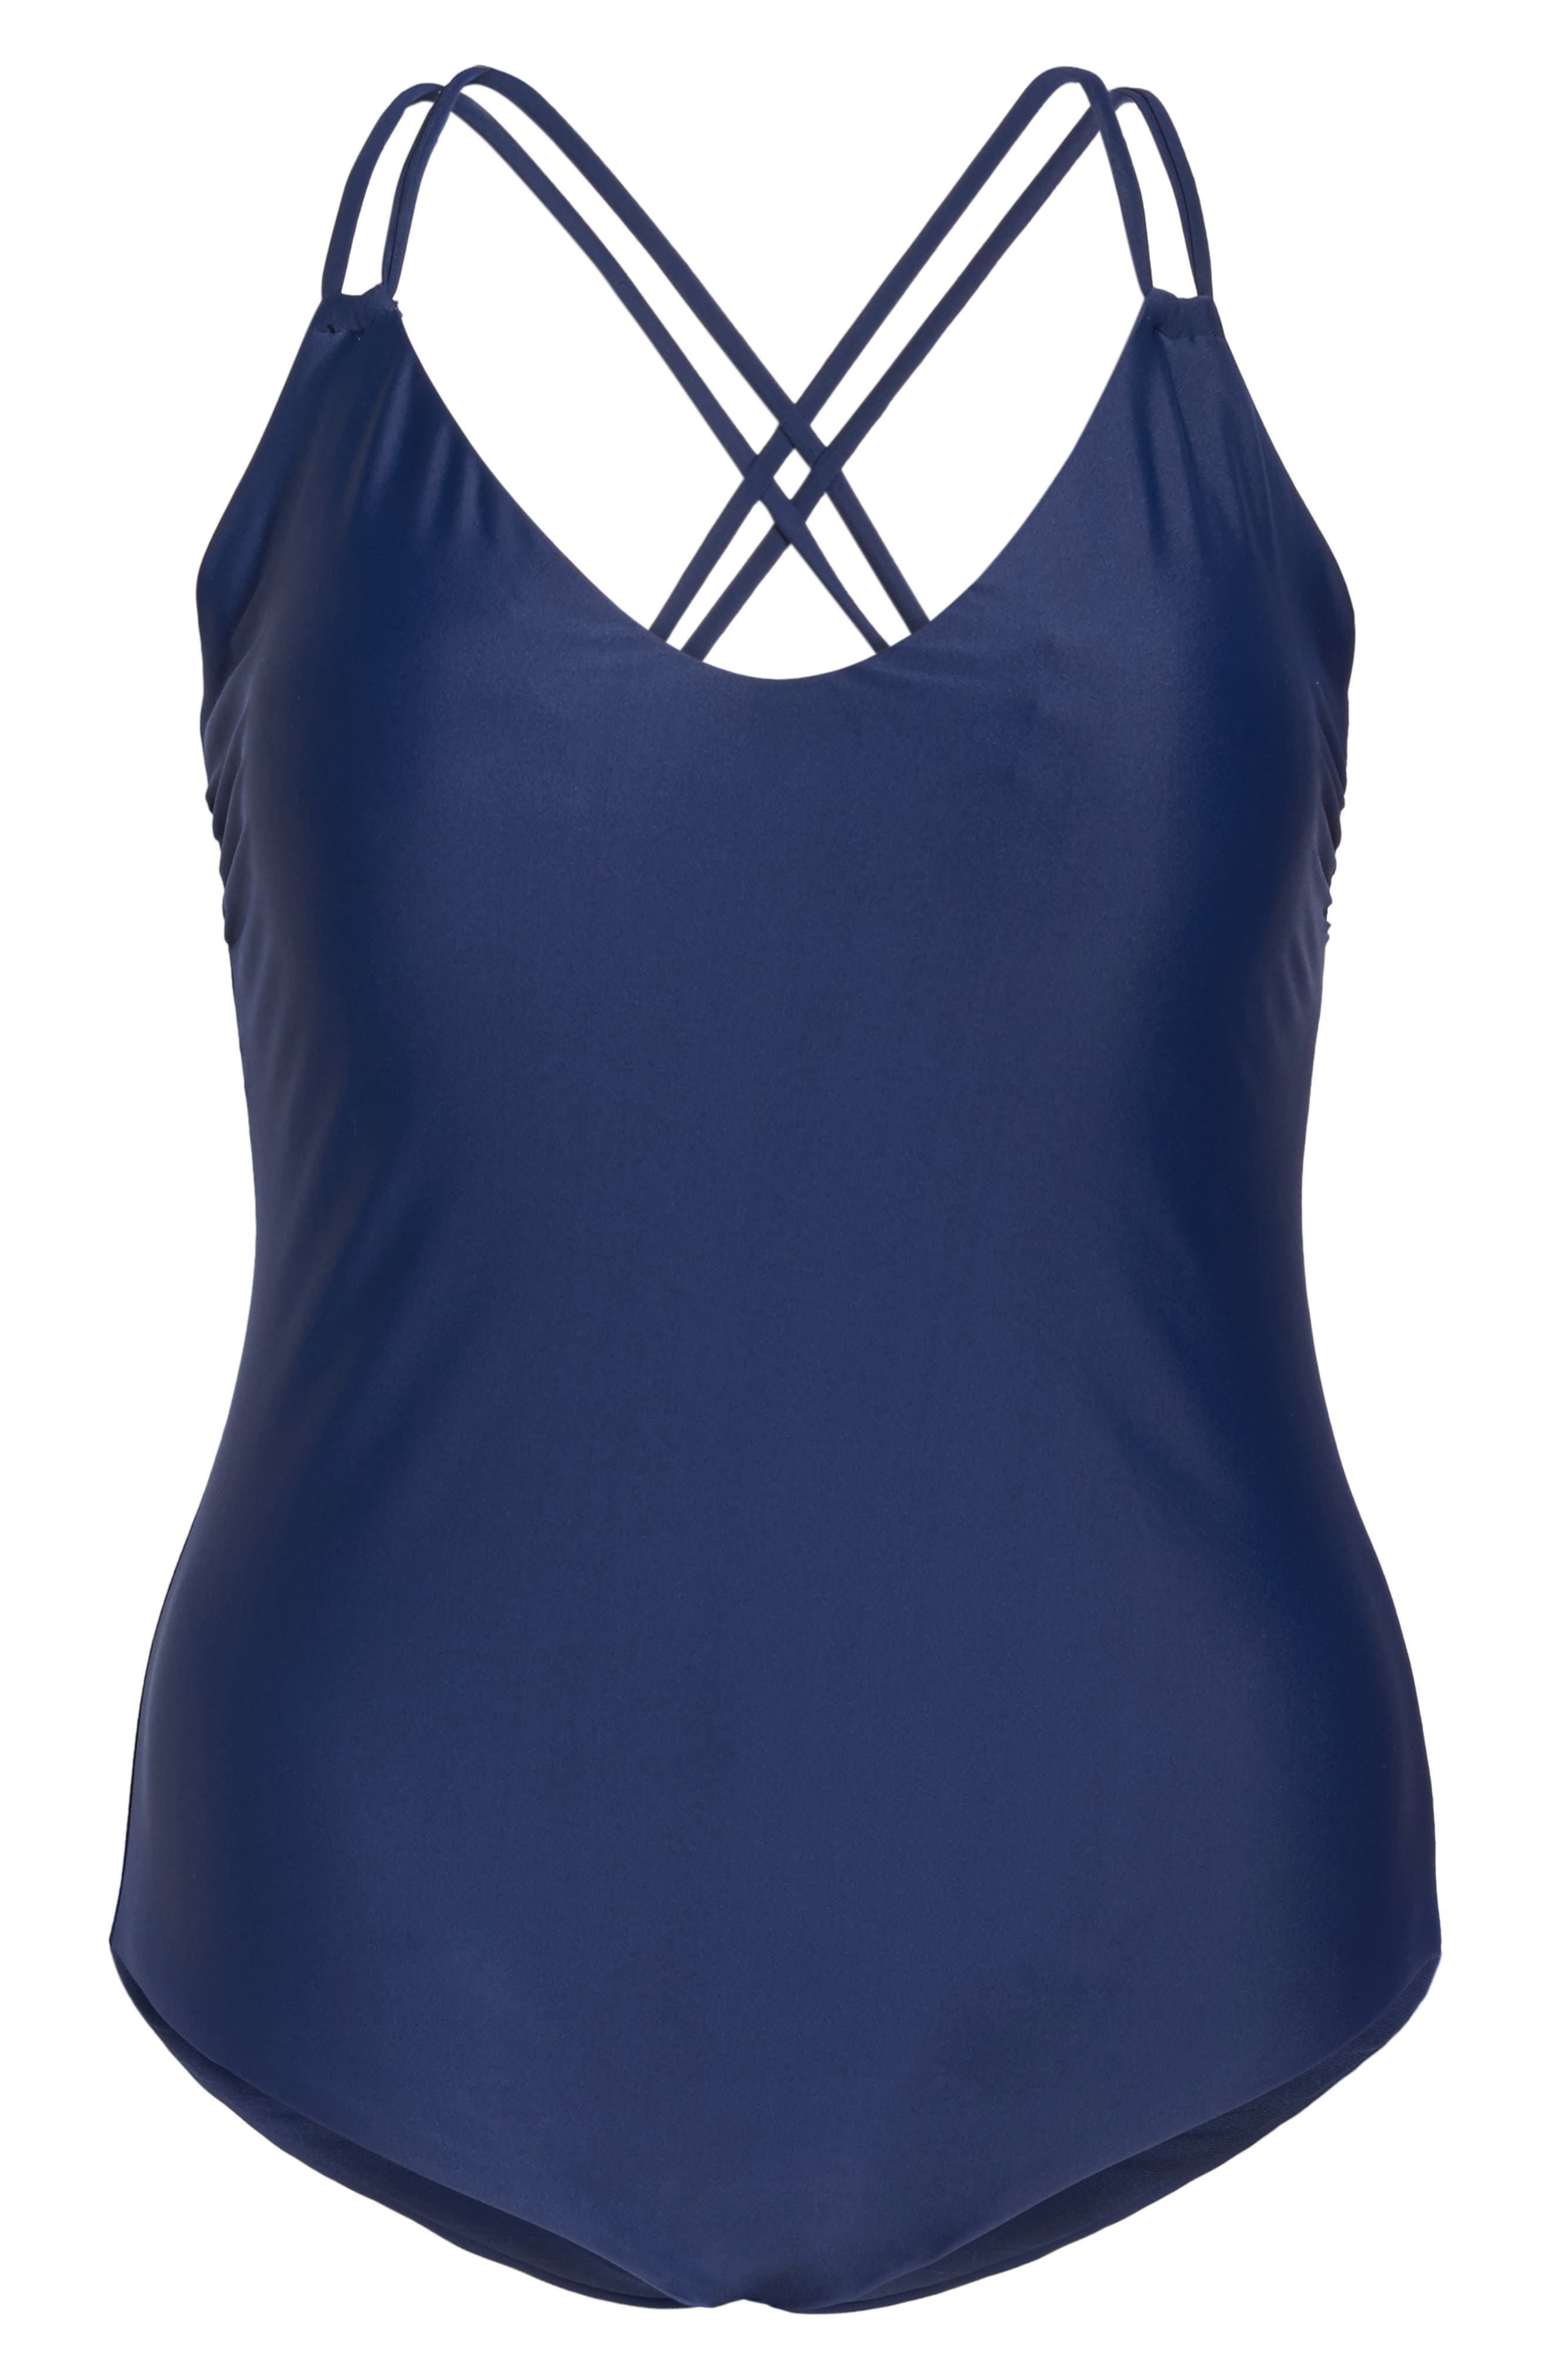 Keep It Simple One-Piece Swimsuit,                             Alternate thumbnail 6, color,                             415